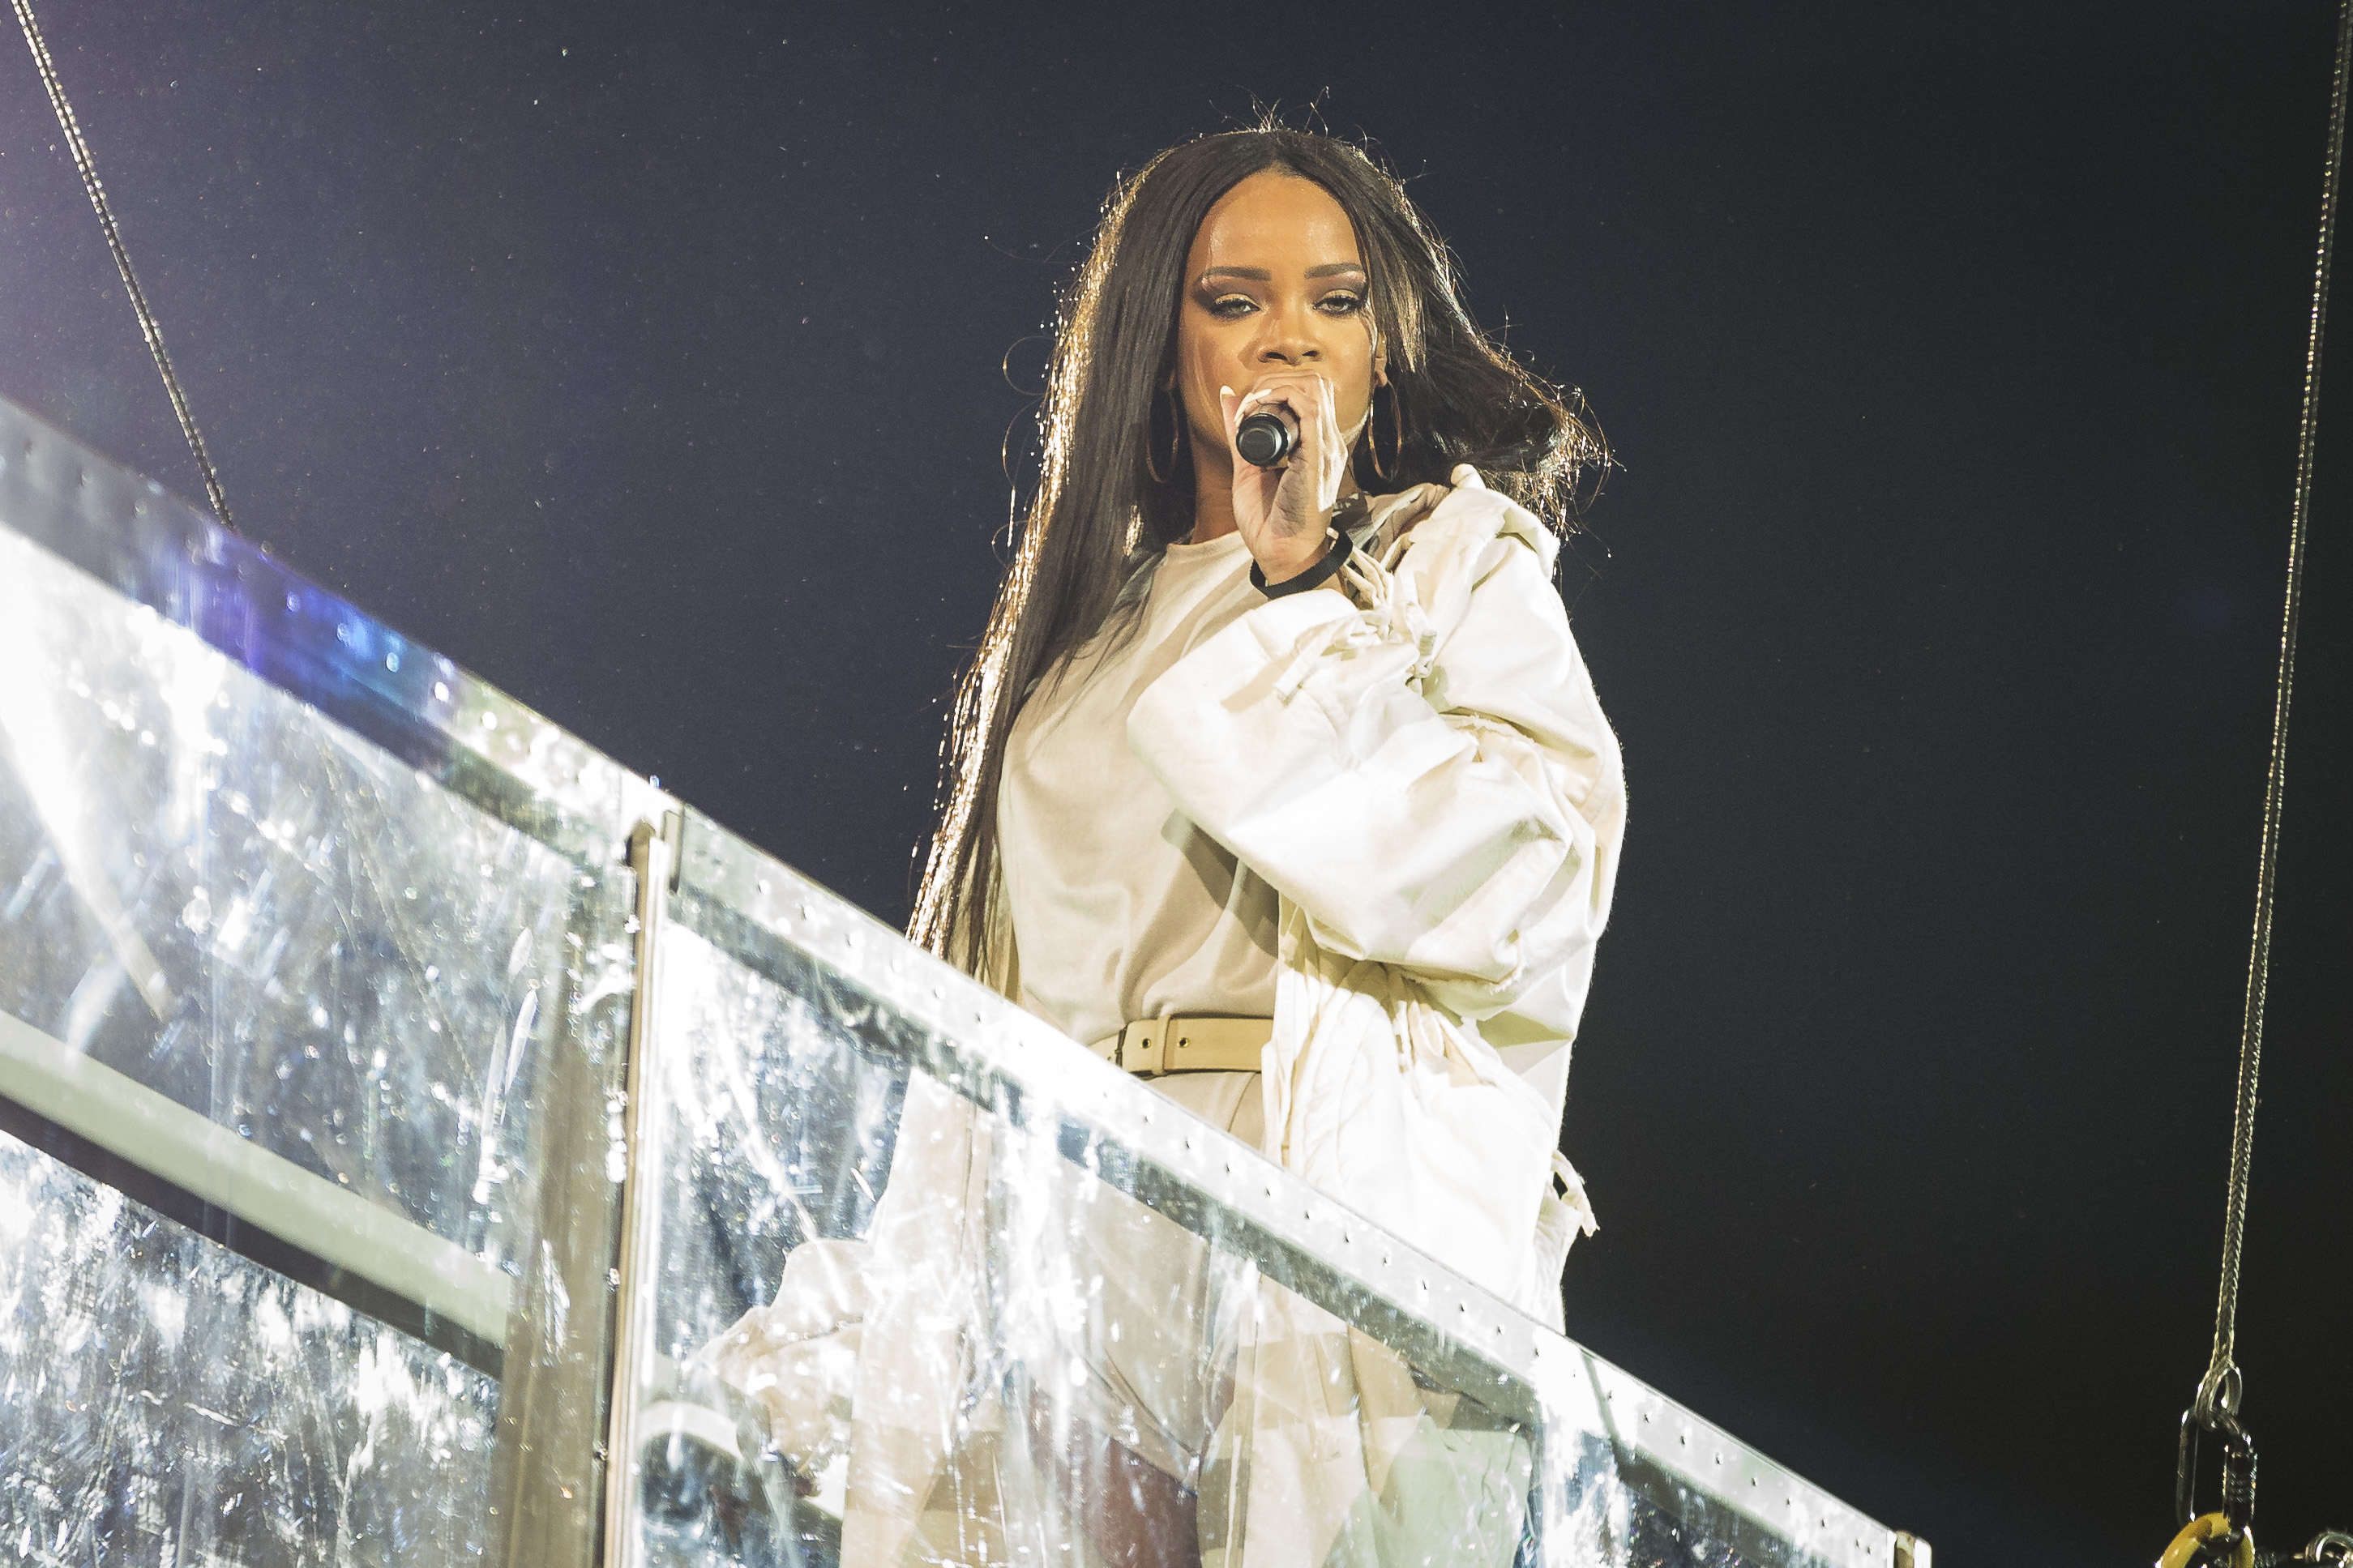 Rihanna Performs in Concert in Stockholm